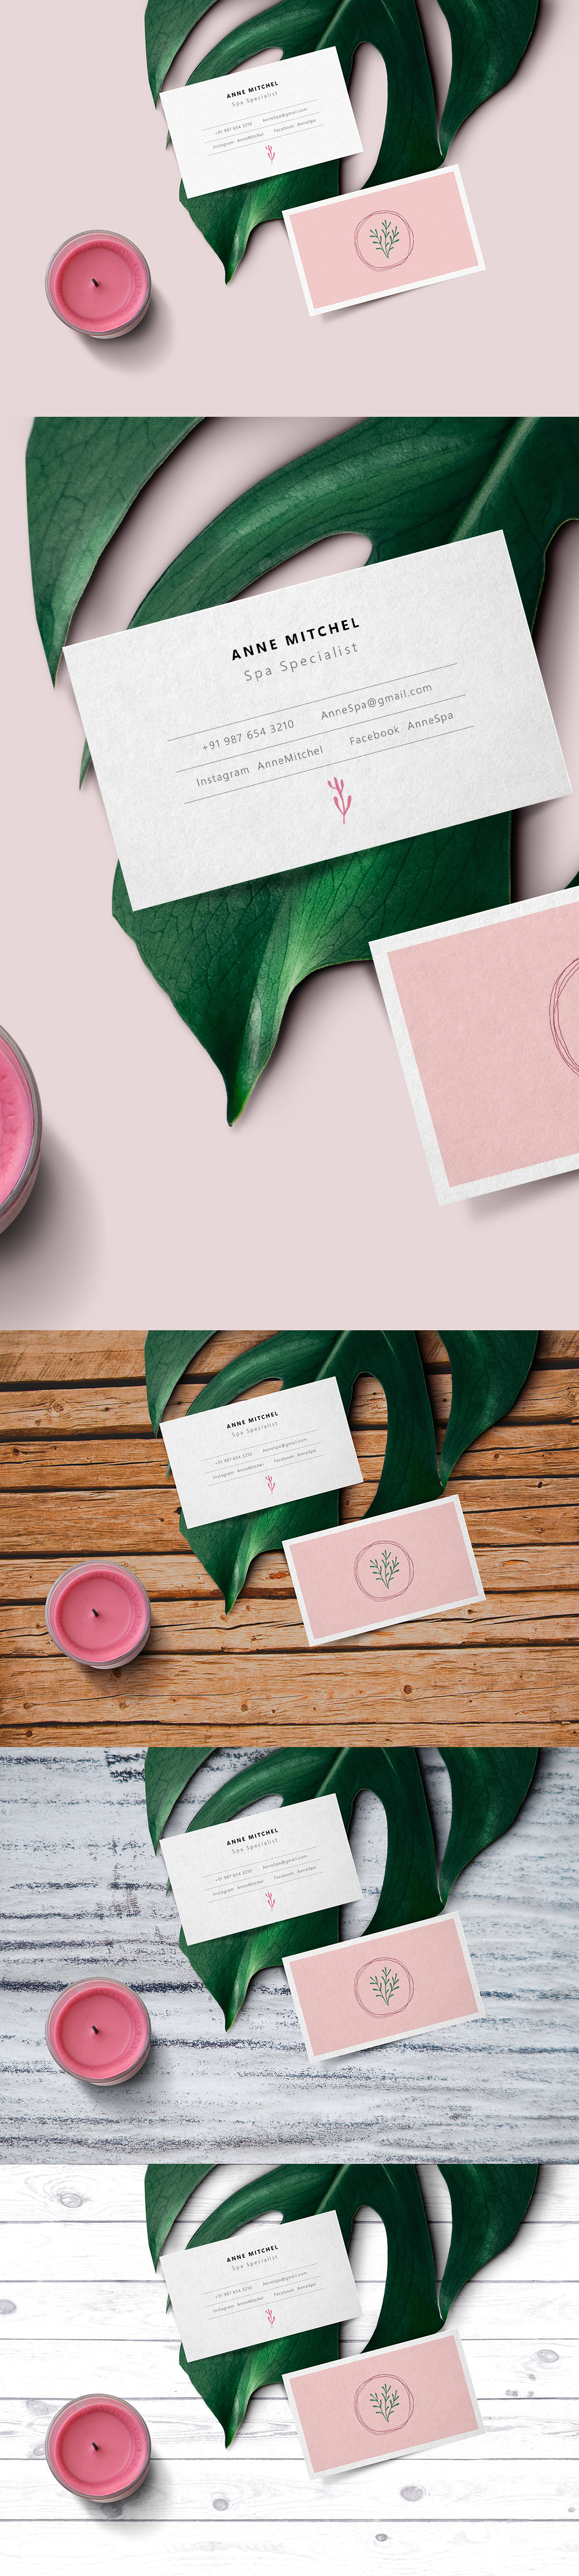 Feminine Business Card Mockup - GraphicsFuel